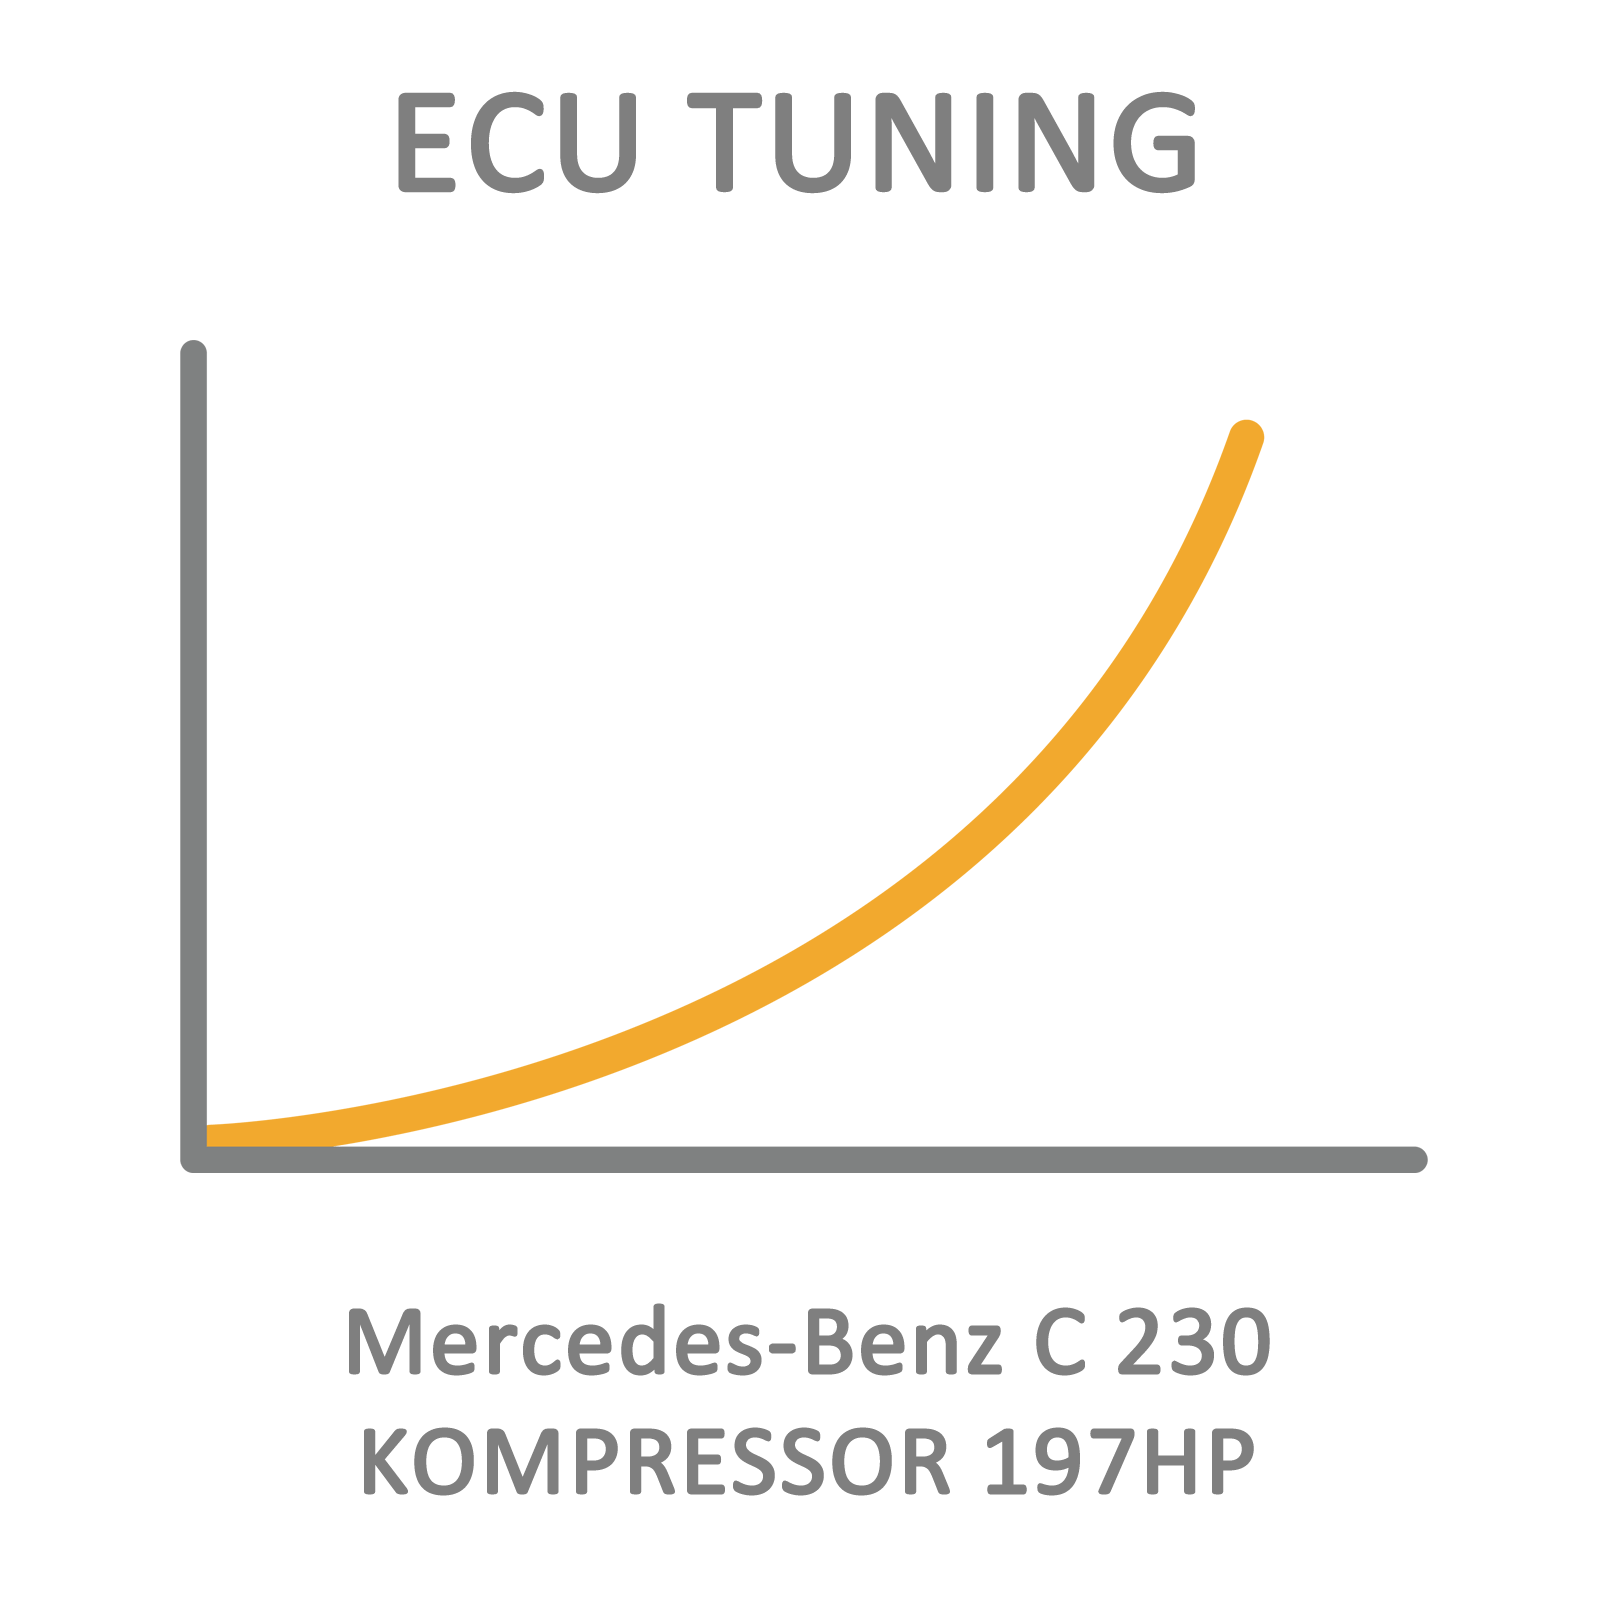 Mercedes-Benz C 230 KOMPRESSOR 197HP ECU Tuning Remapping